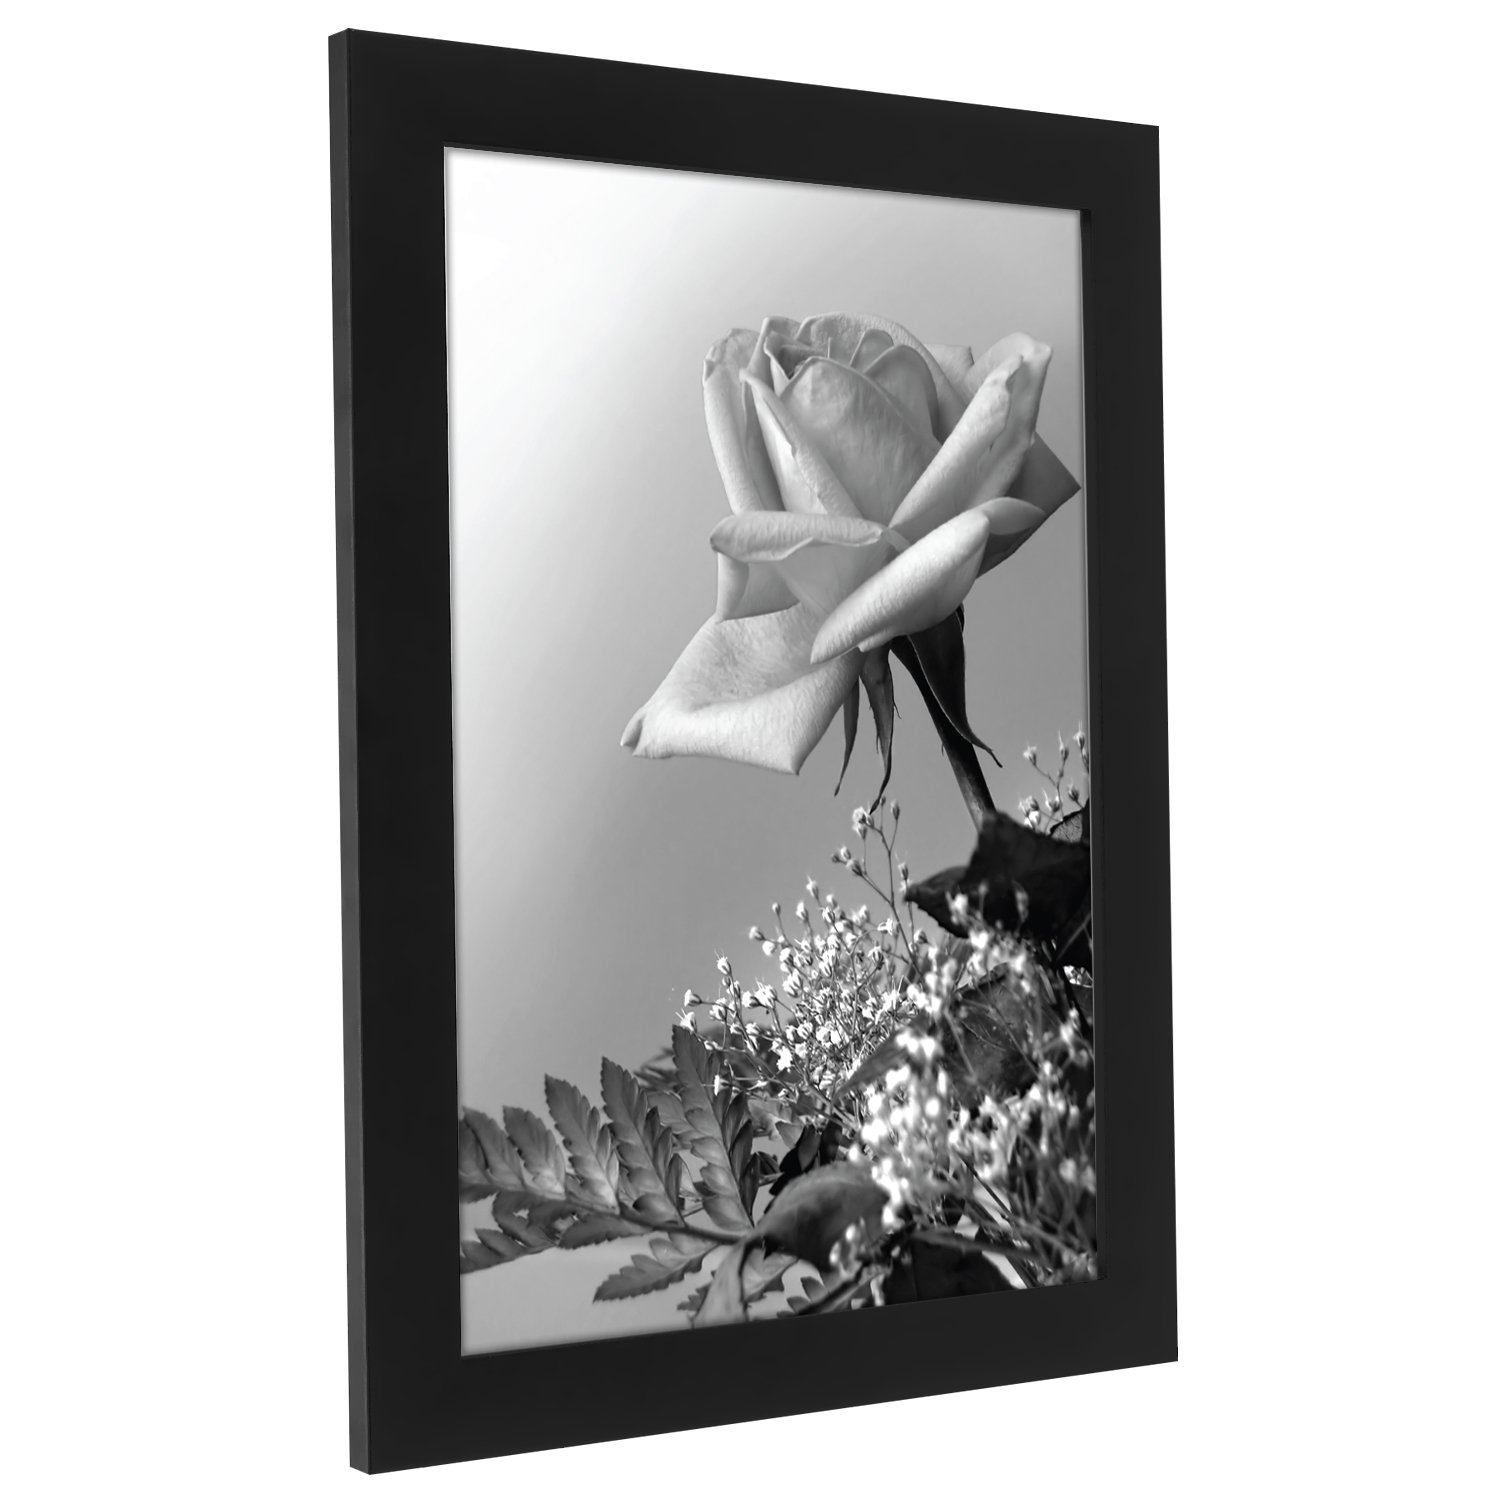 Americanflat A4 (21x29.7 cm) Black Wood Picture Frame with Glass ...